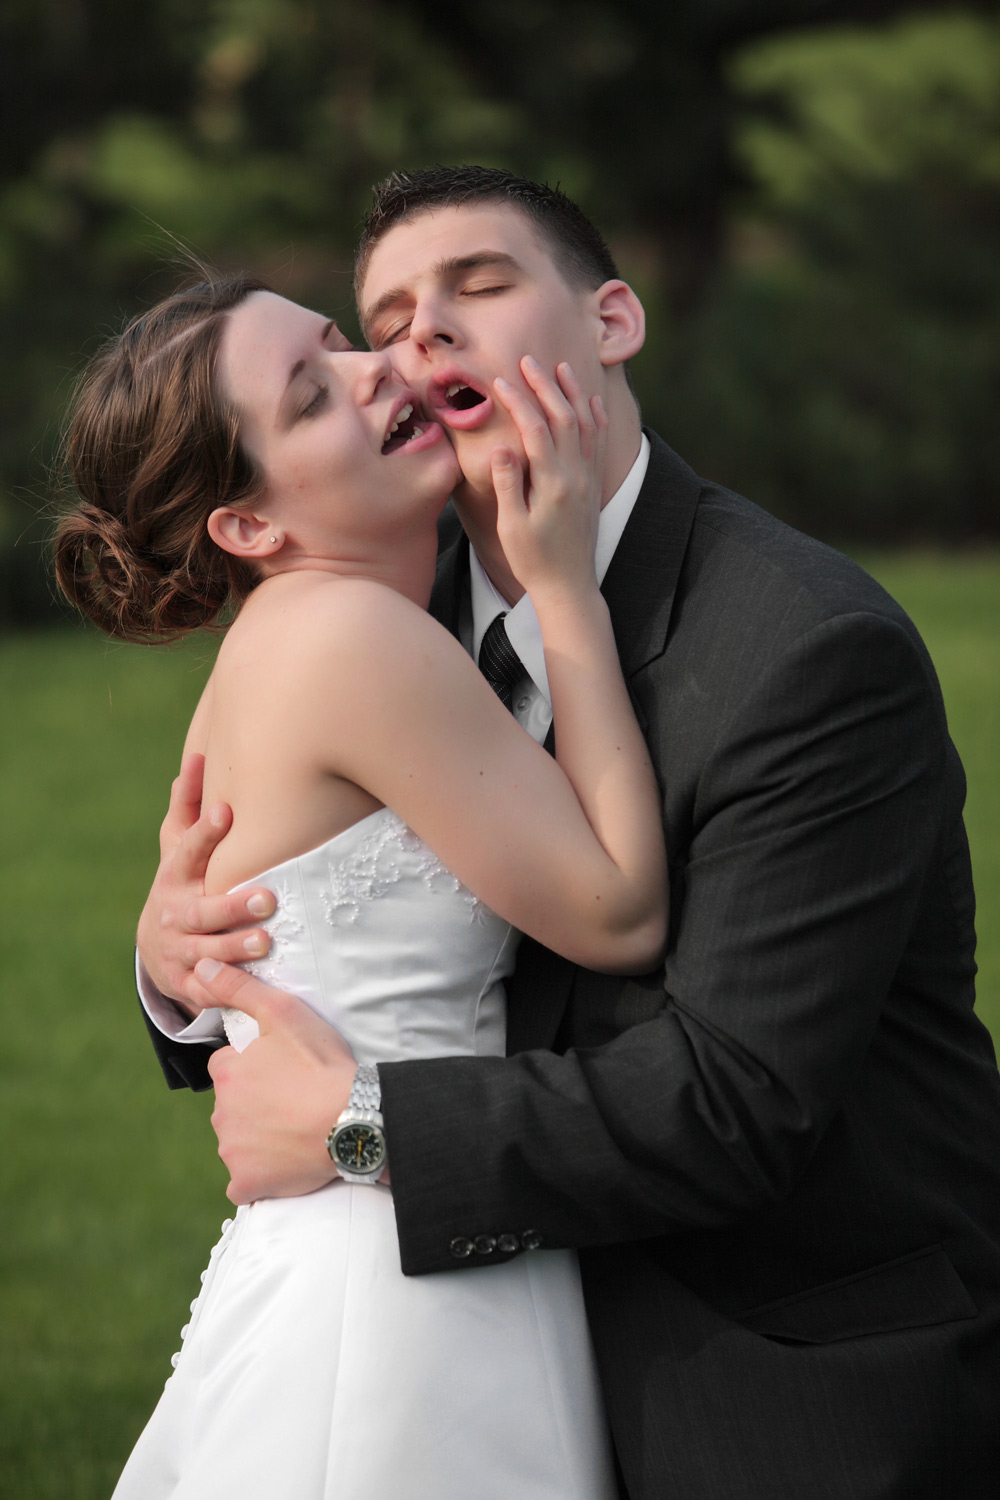 minnesota-wedding-photographers-mark-kegans-902.jpg